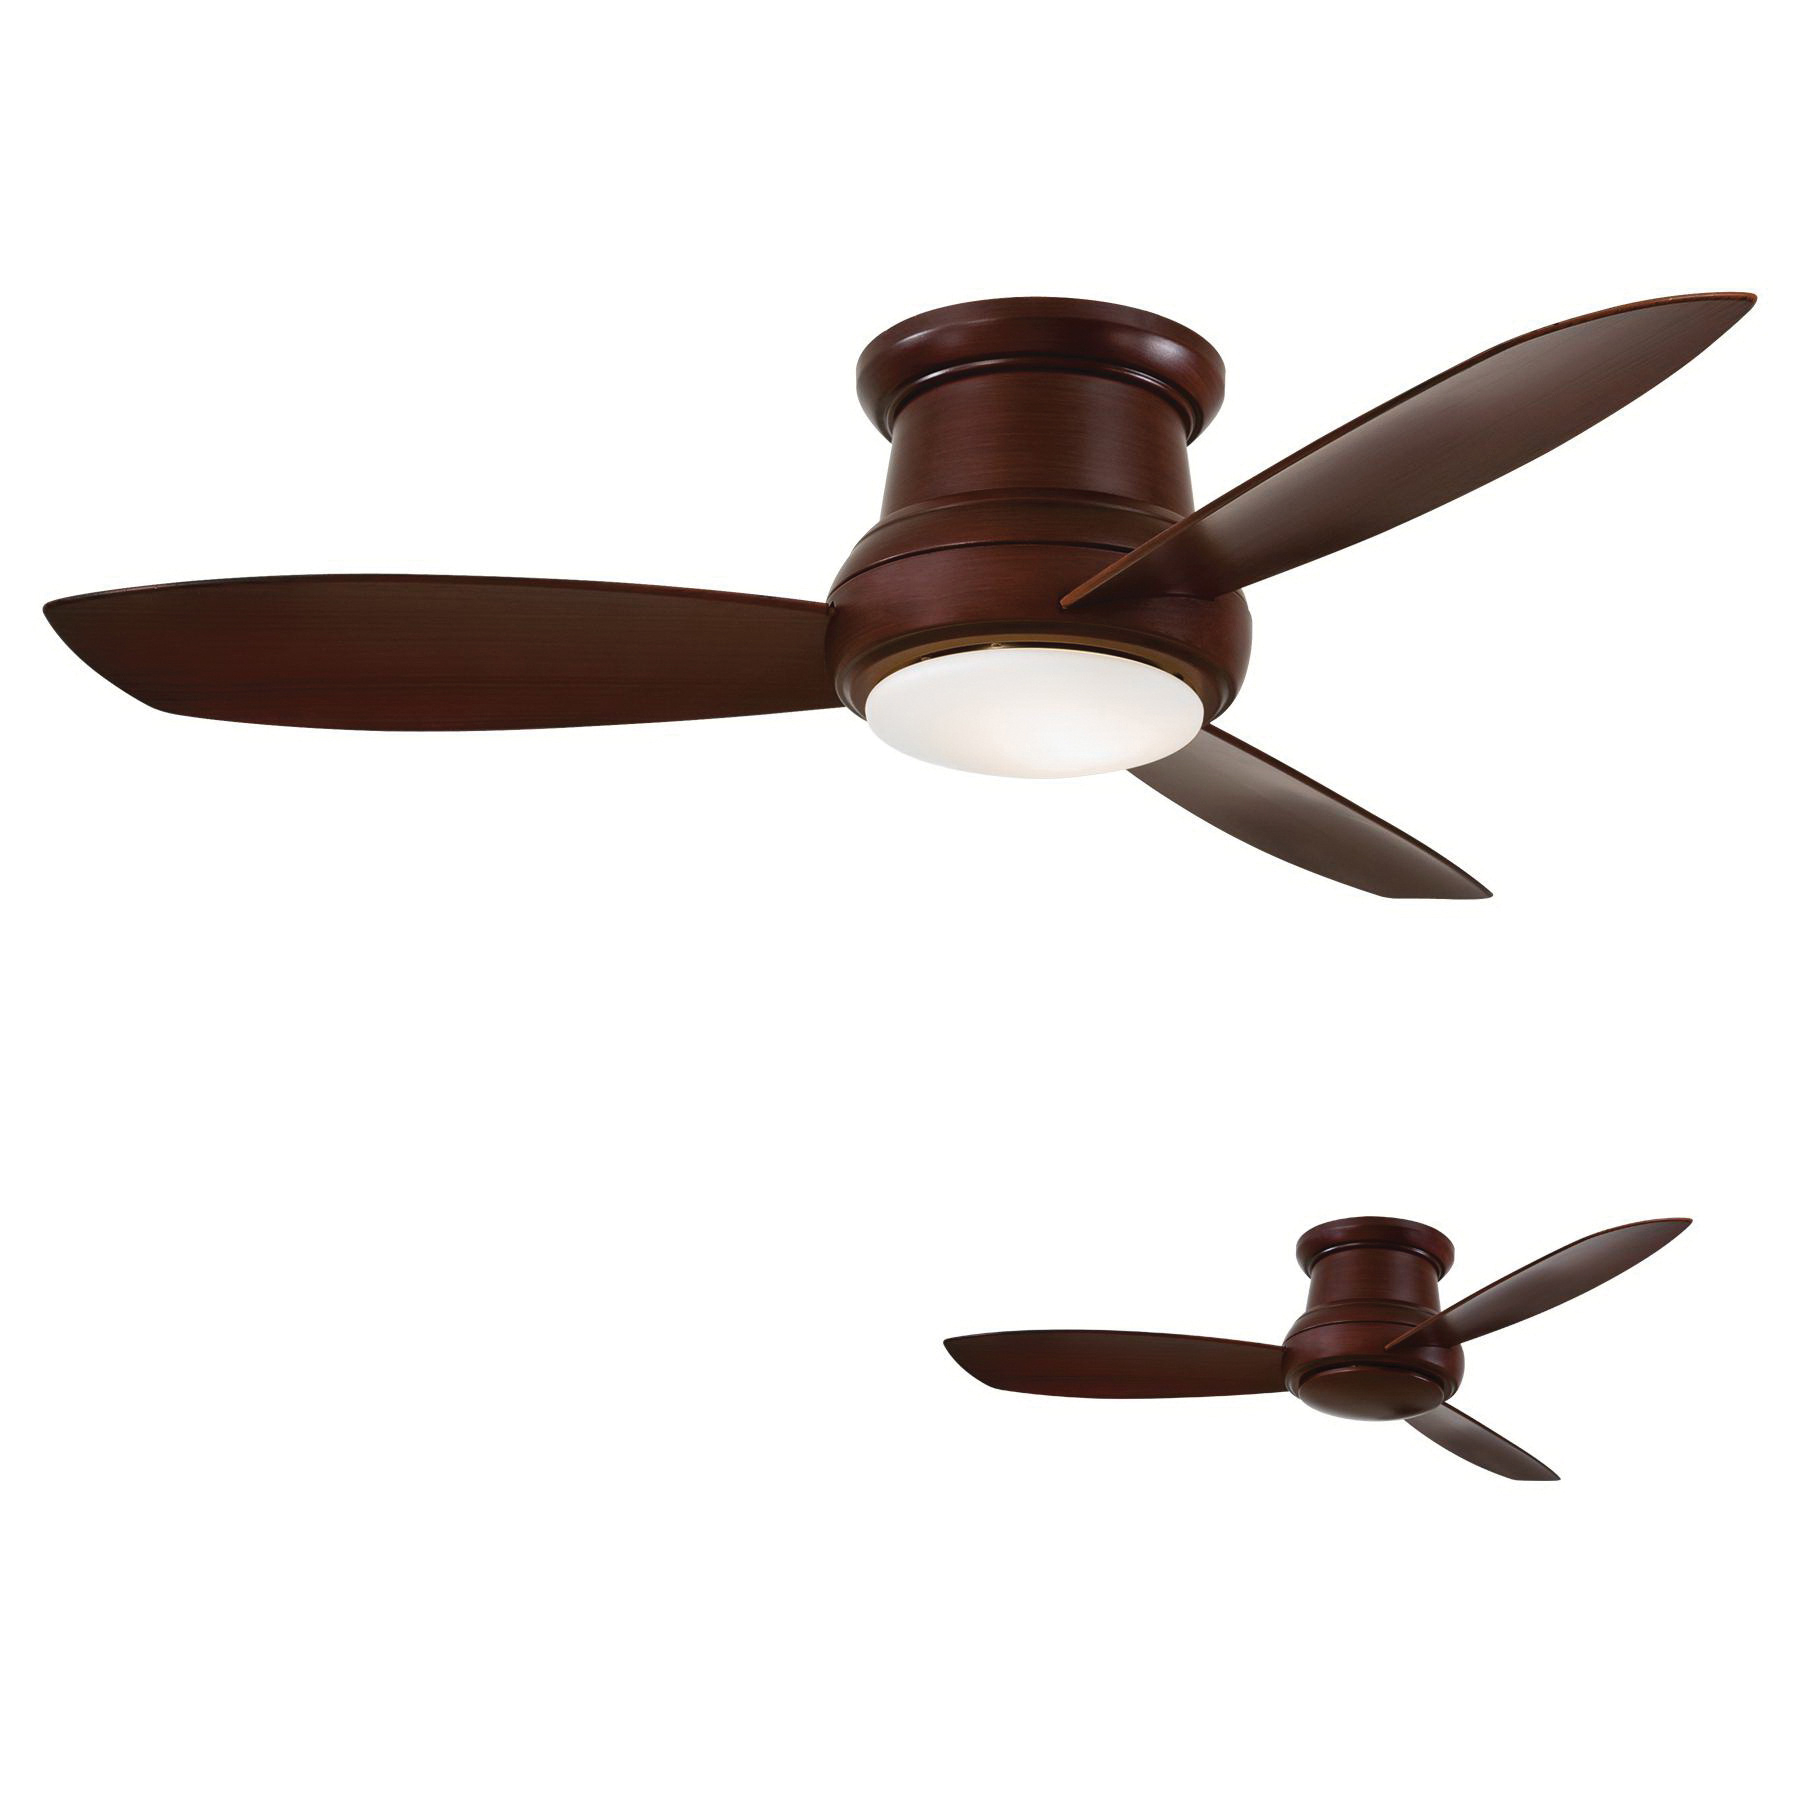 Minka Aire F519L Mg Ceiling Fan With Light 52 Inch 3 Blade 3 Within Most Popular Concept Ii 3 Blade Ceiling Fans (View 15 of 20)